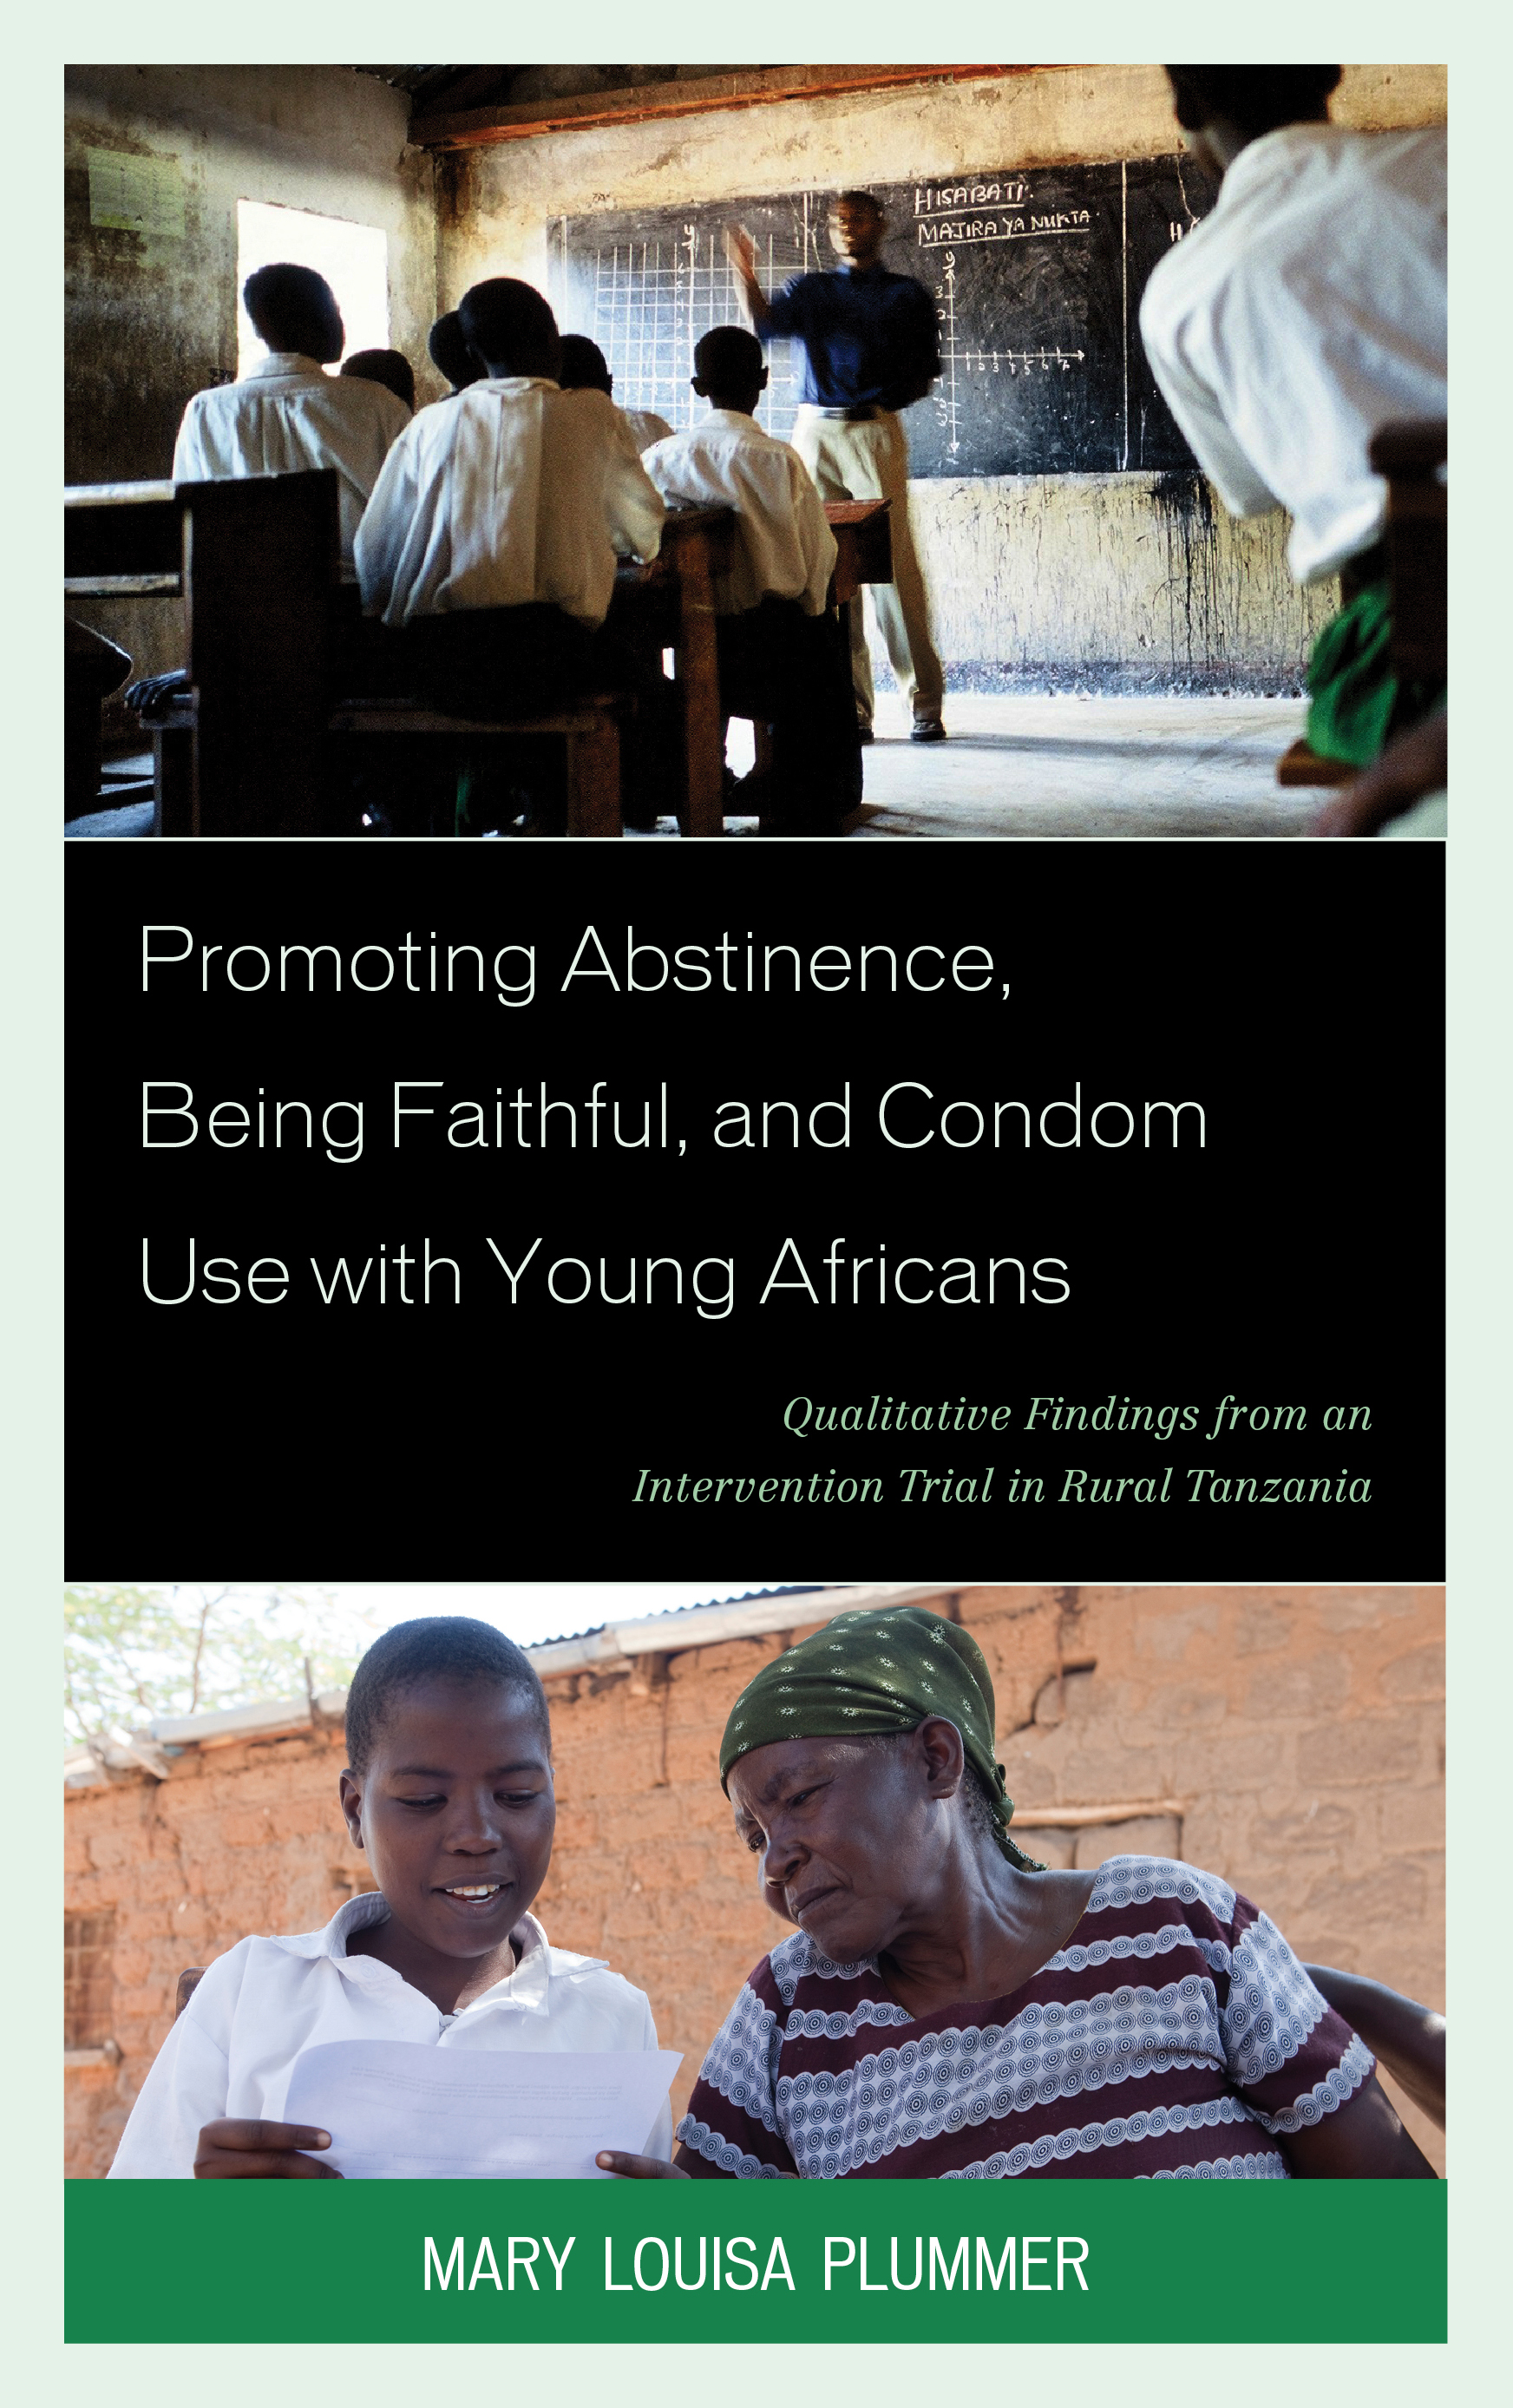 Promoting Abstinence, Being Faithful, and Condom Use with Young Africans